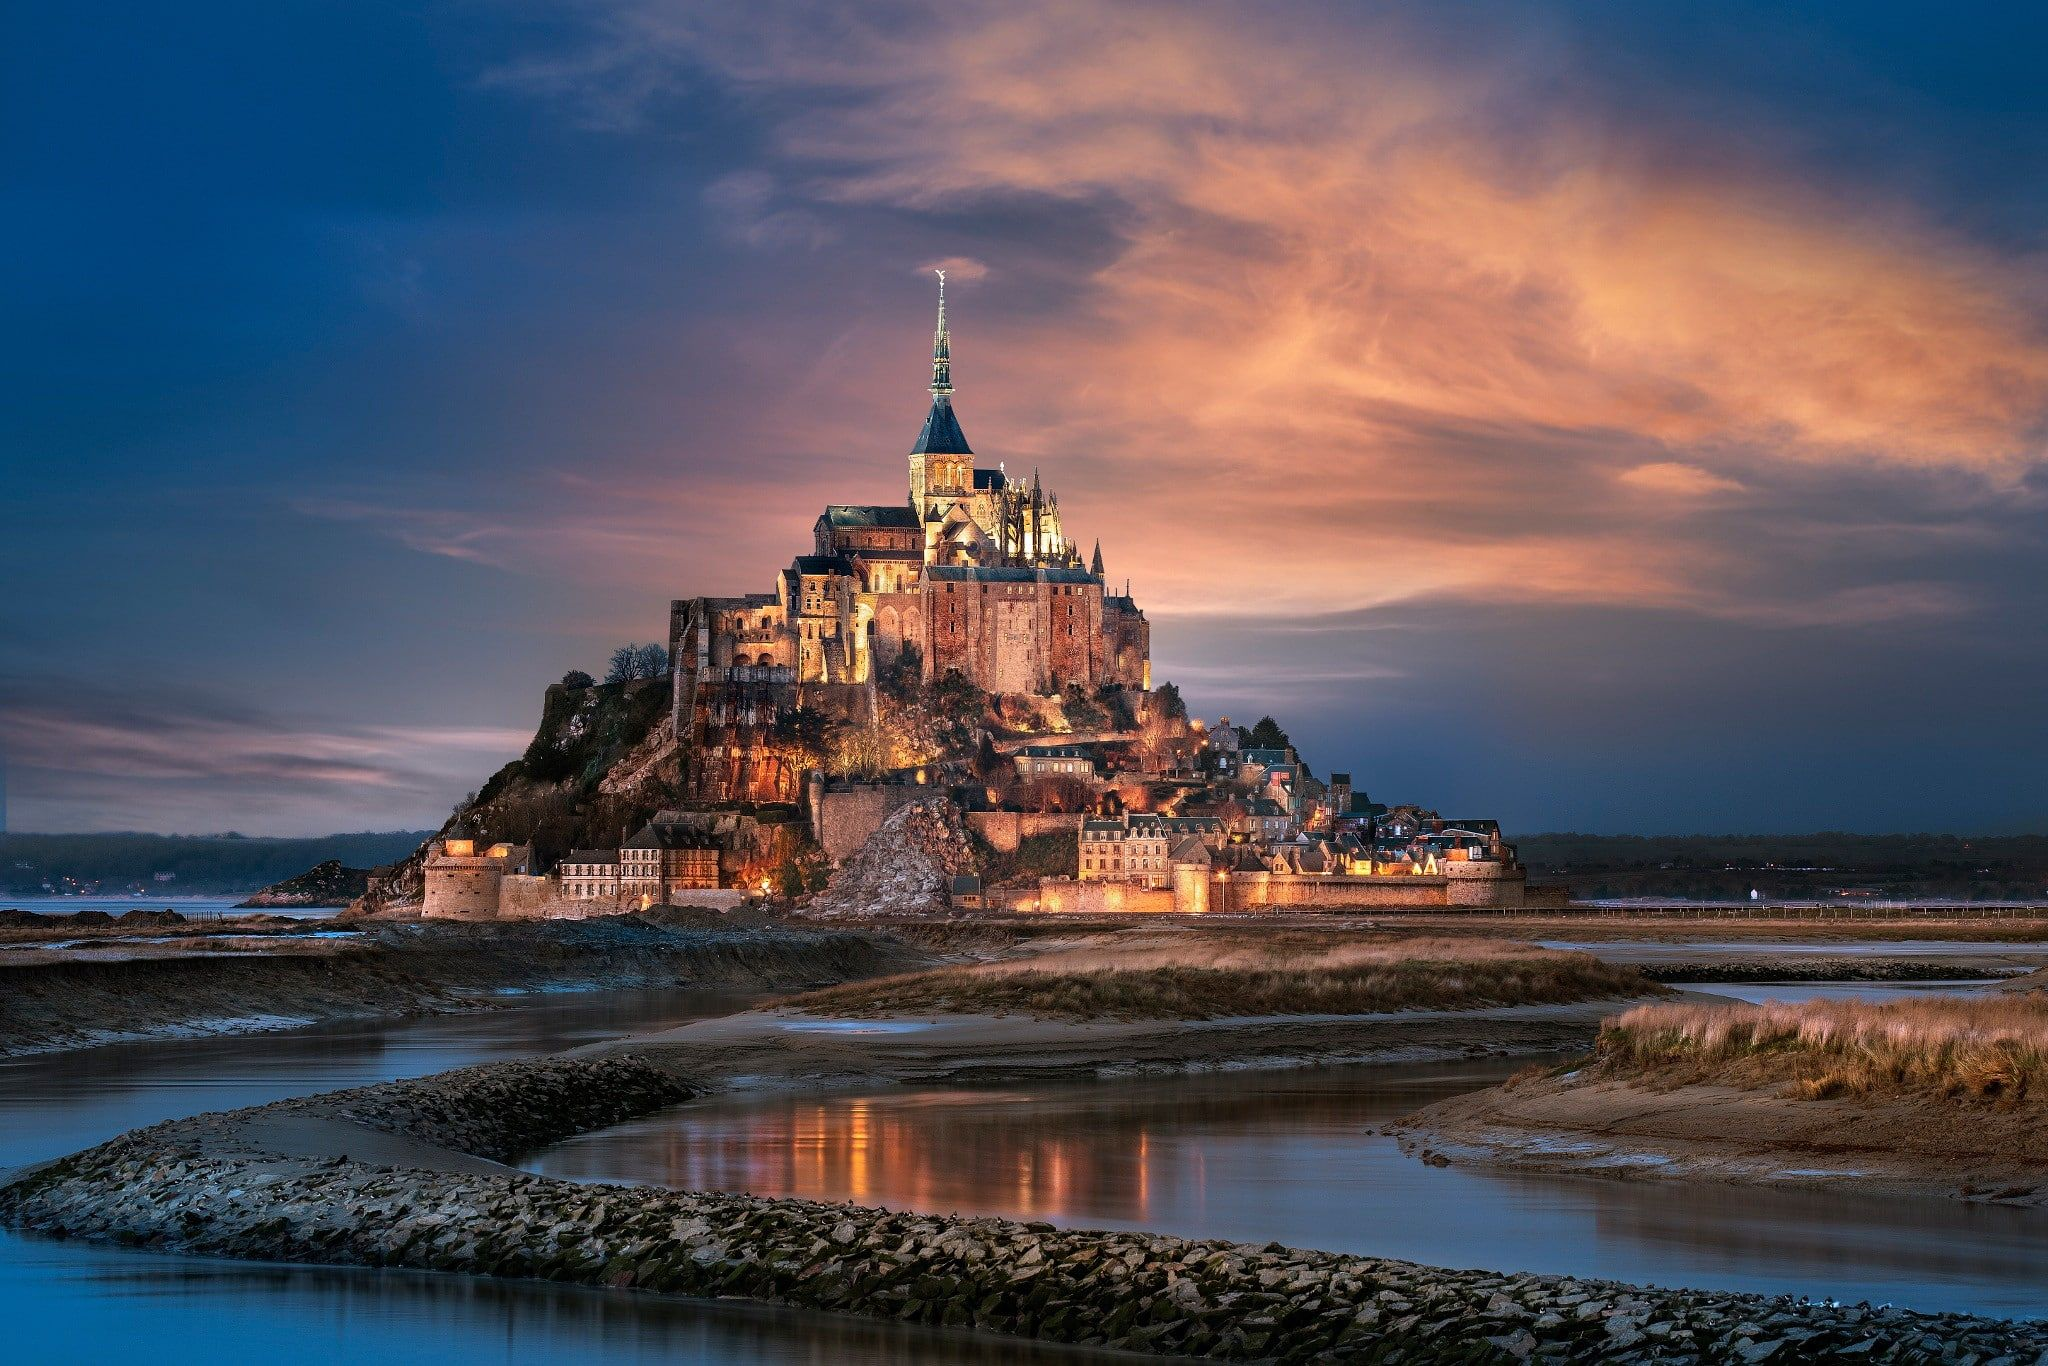 France Normandy France Normandy The City The Island Fortress Mont Saint Michel Mount Michael Th In 2020 Best Vacation Destinations Beautiful Castles Normandy France